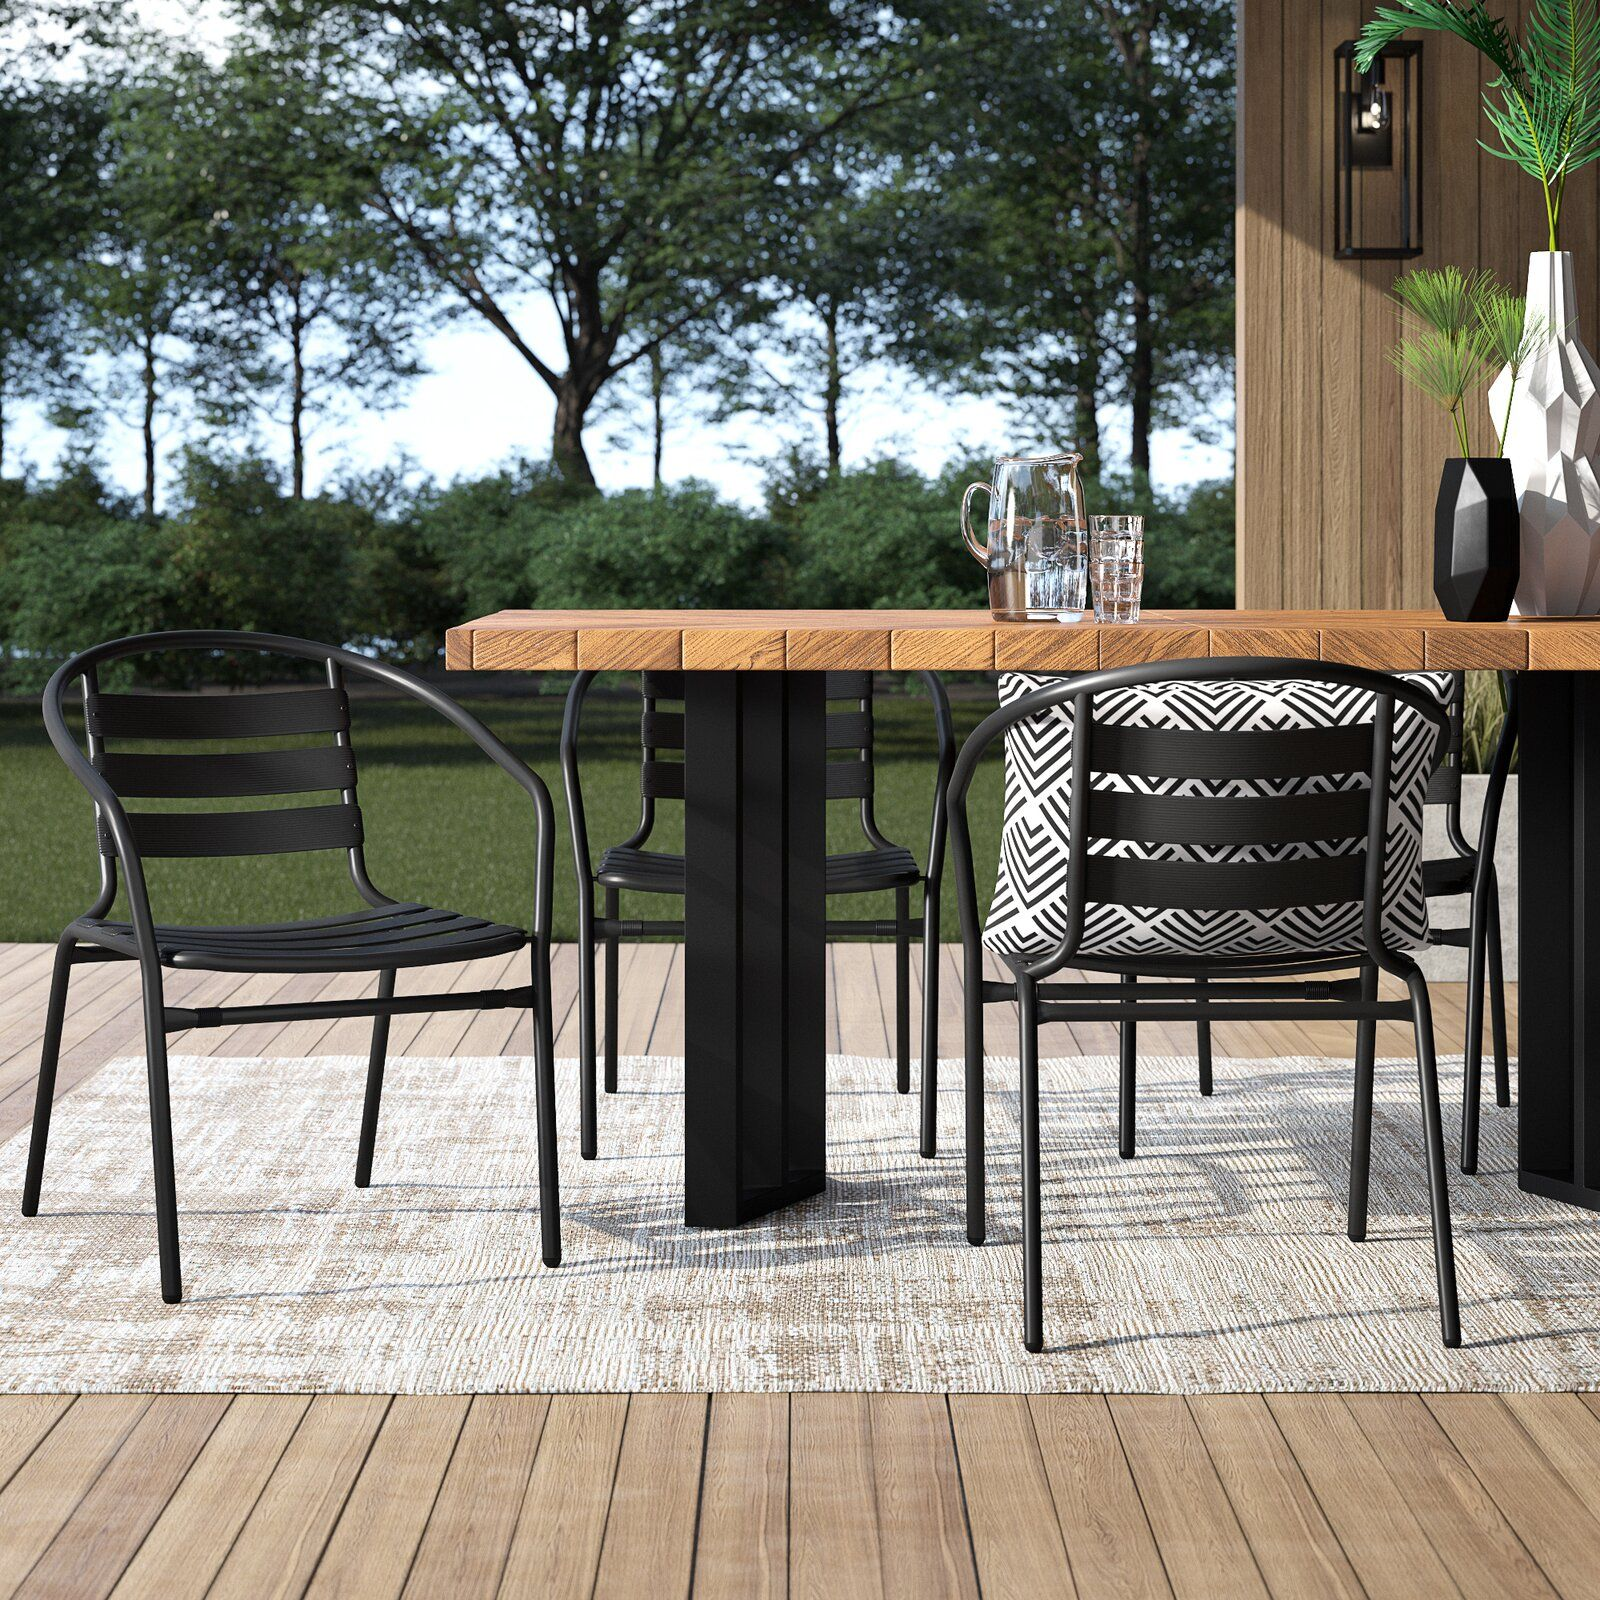 Corrales Stacking Patio Dining Chair in 8  Patio dining chairs